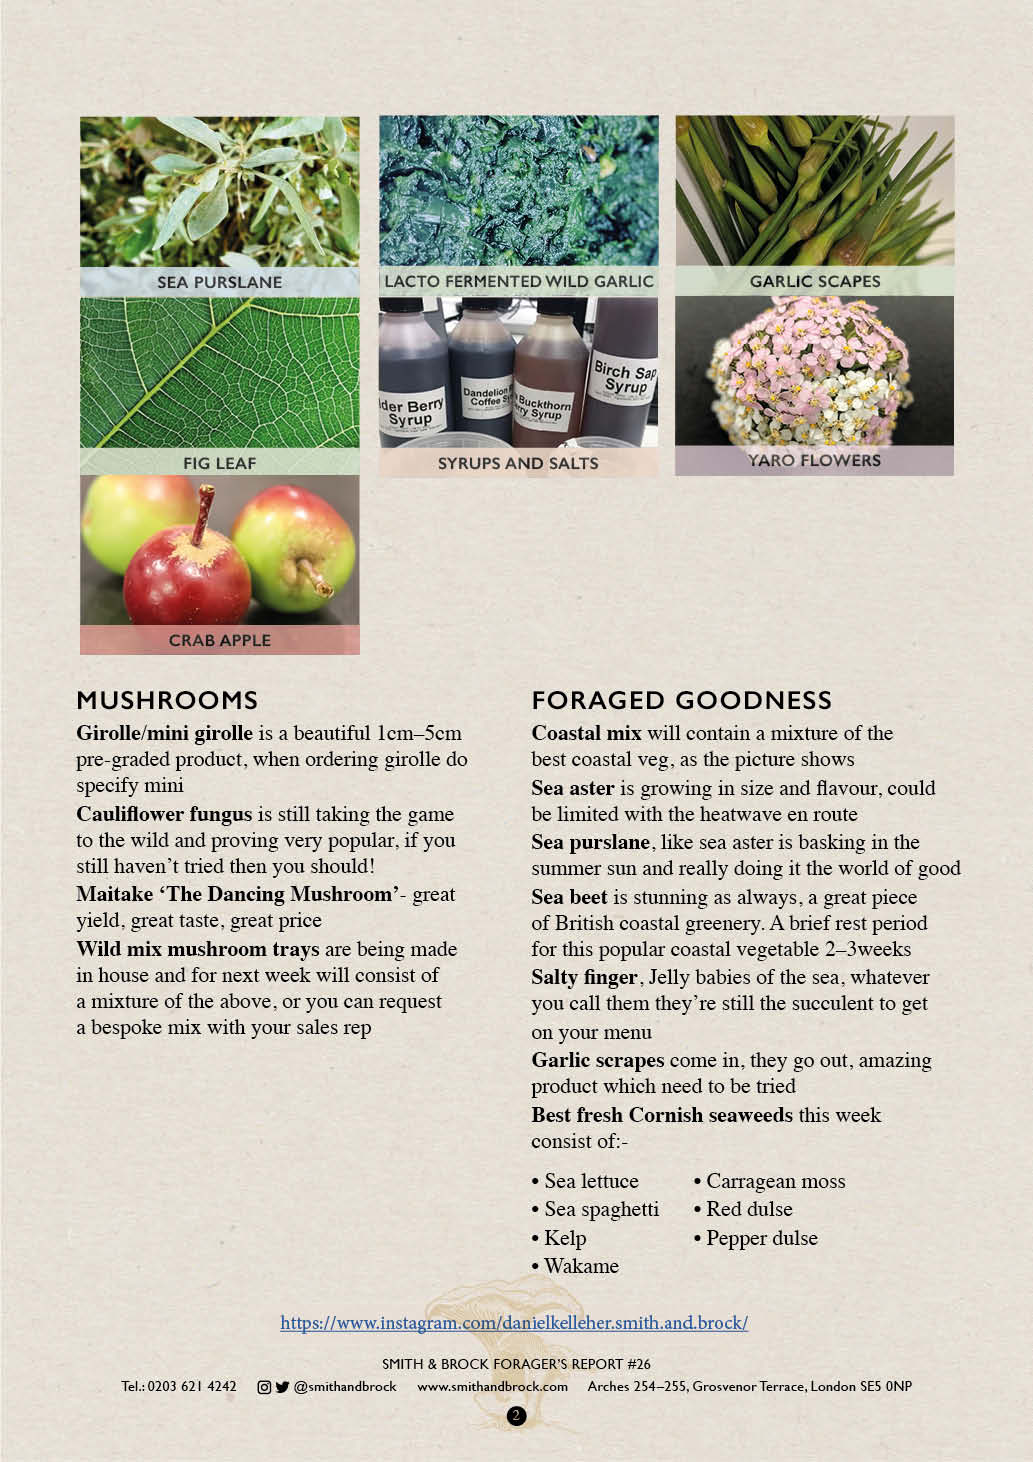 Smith&Brock Foraged Products Report 30 Sep 2019 262